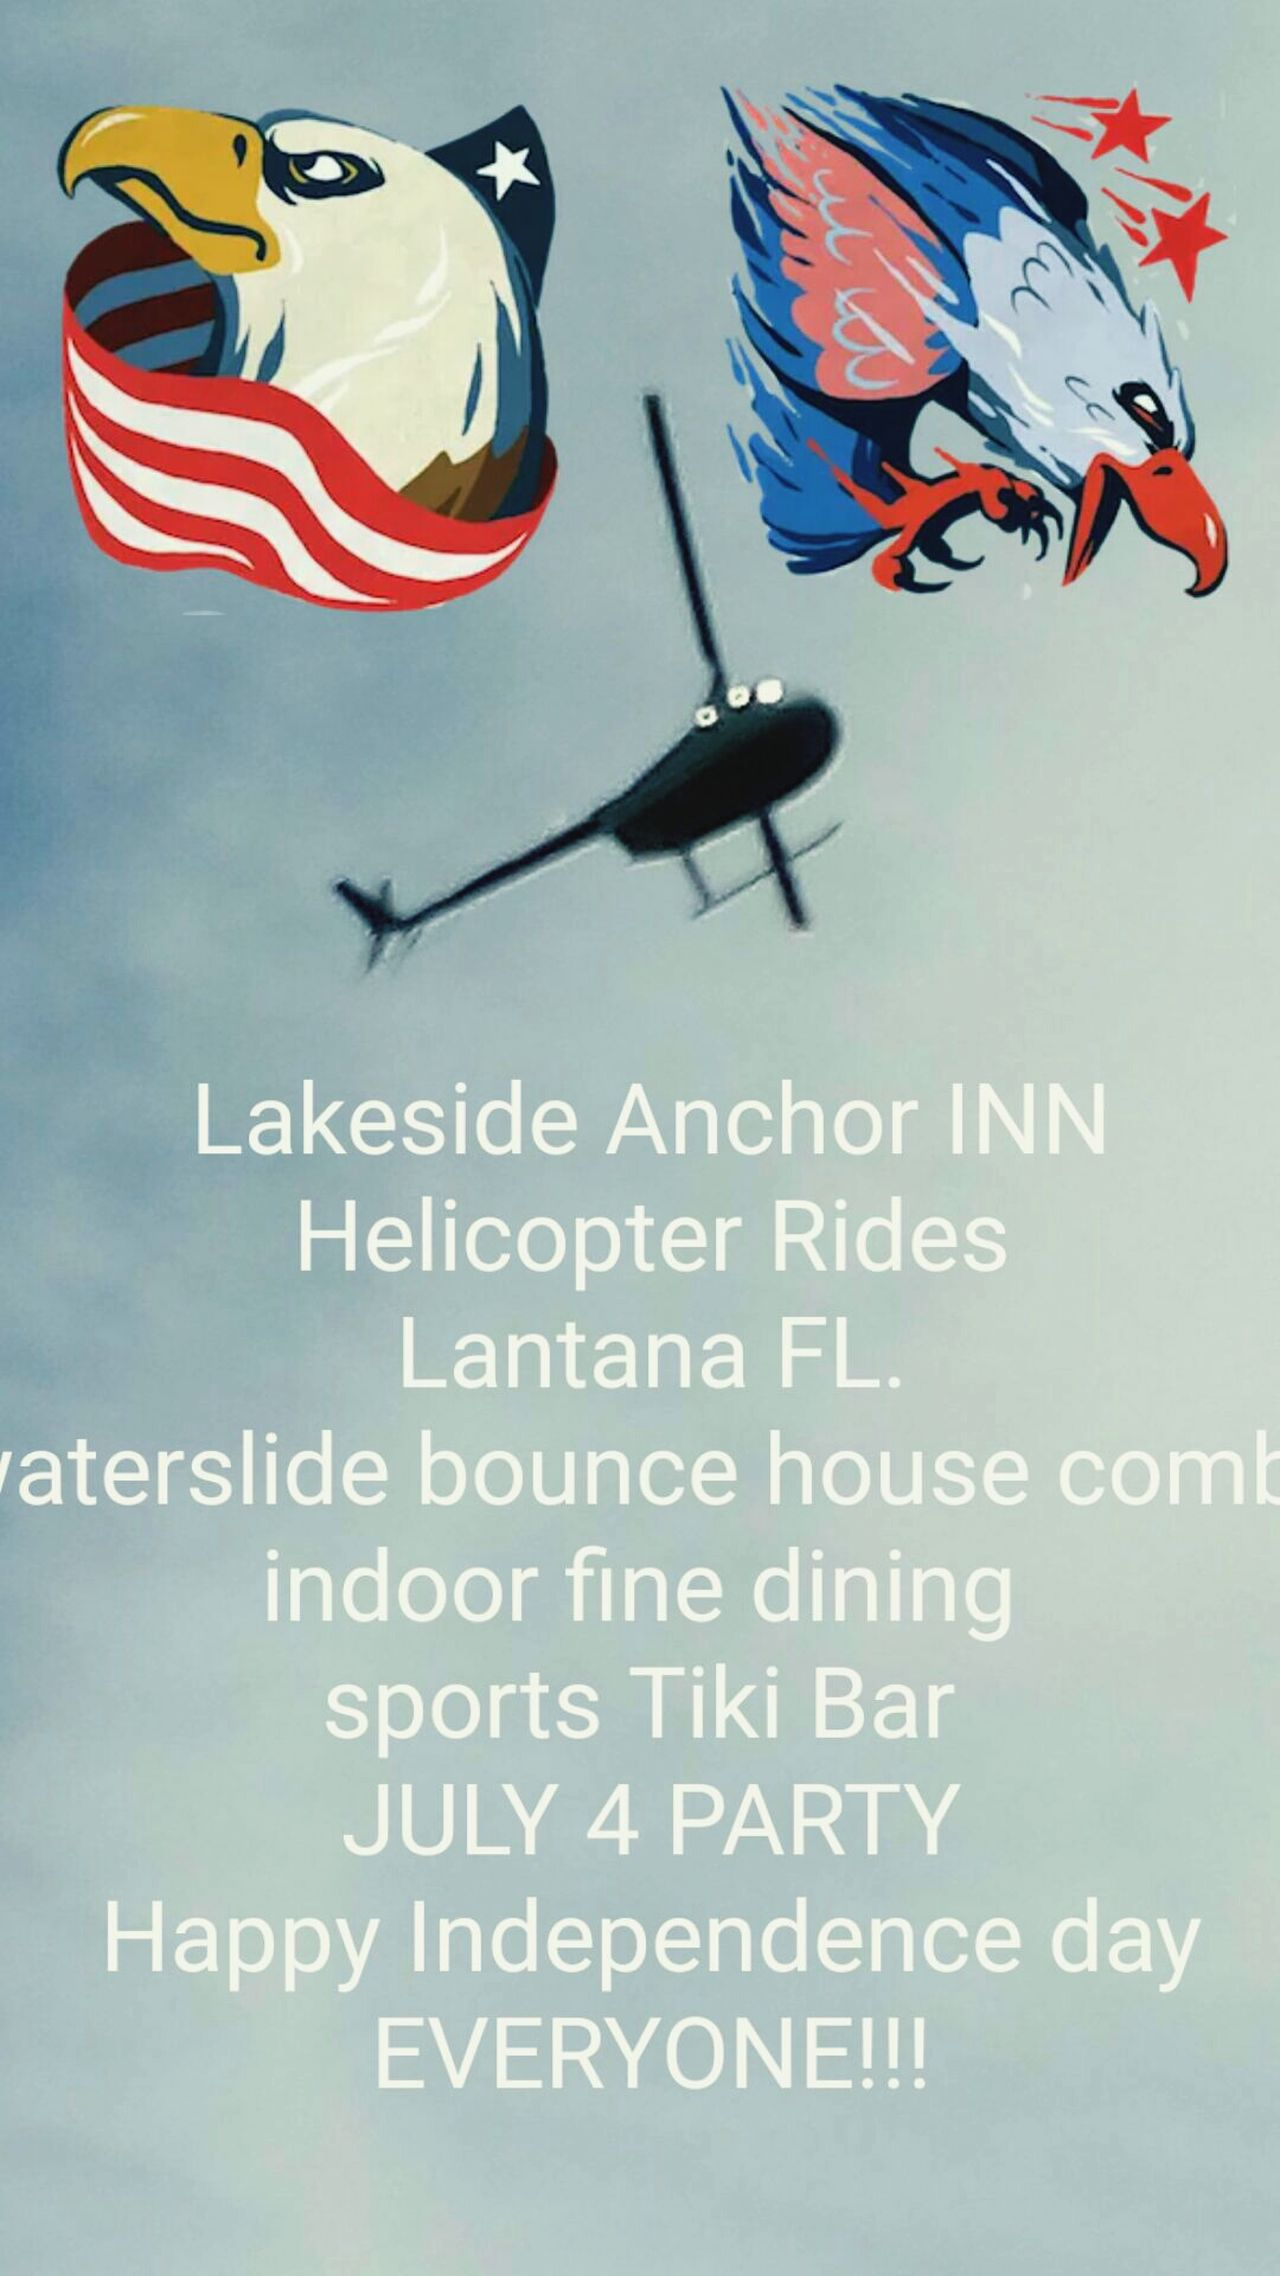 Lakeside Anchor INN!!! LANTANNA FL. FIREWORKS 9:30 PMBig Day At The Resturant / Tiki Sports Bar / Lantanna Fl. My Facebook :post